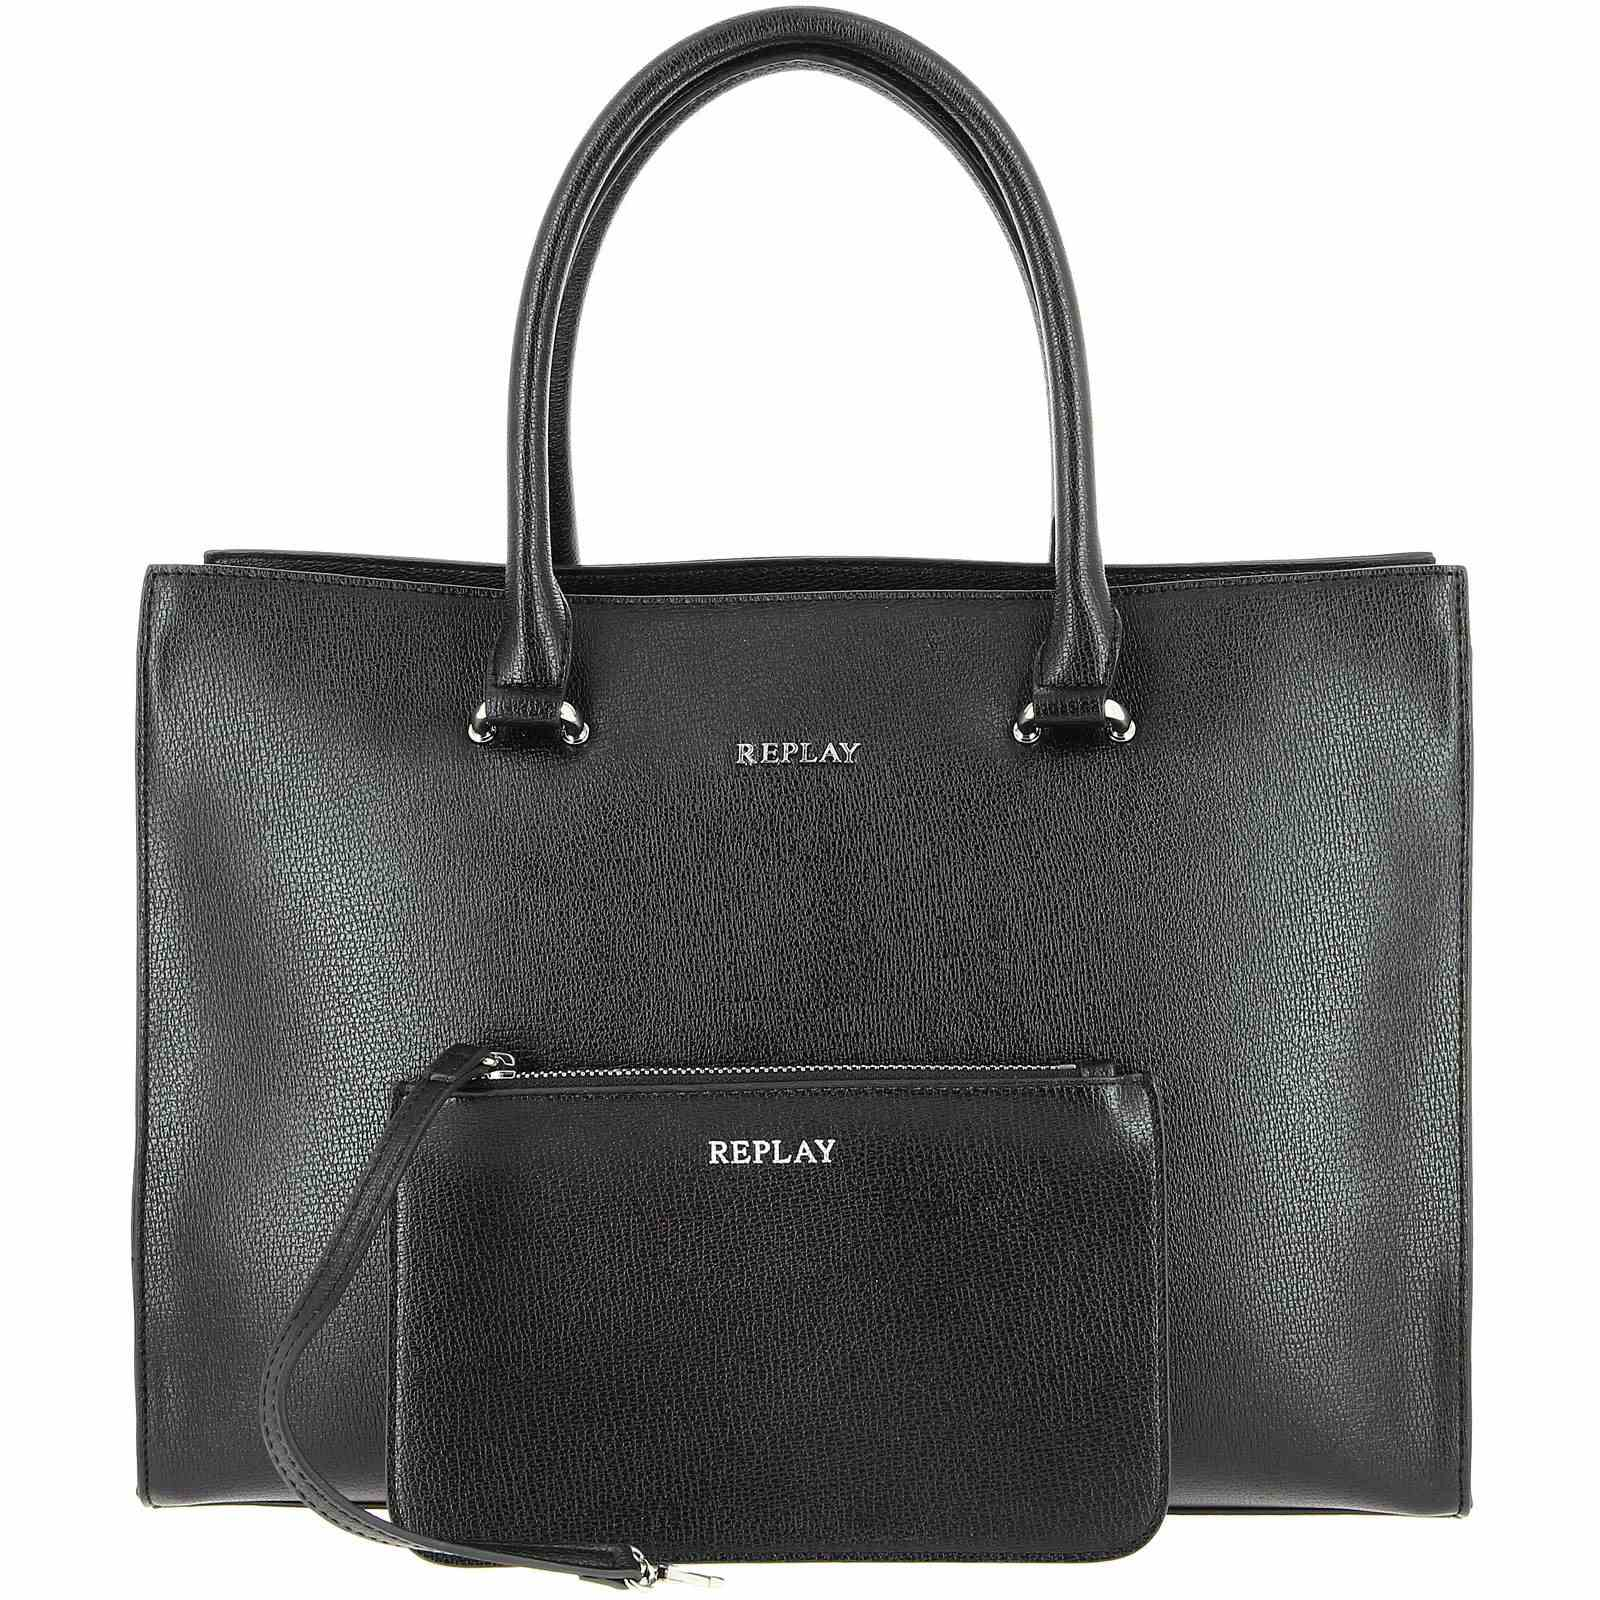 Replay Sac cabas - noir